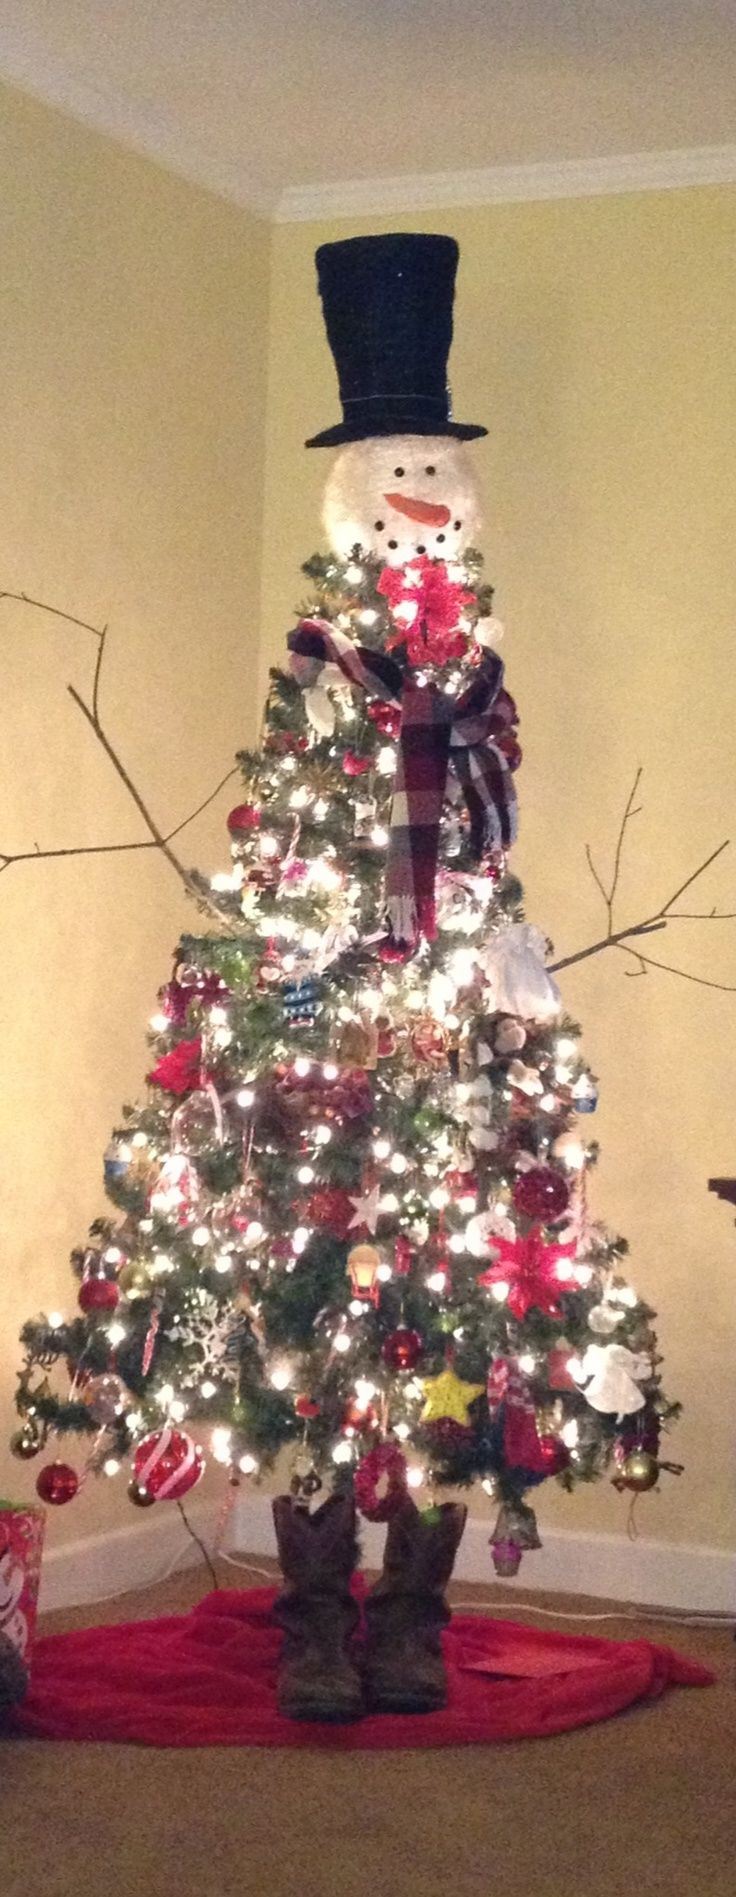 Best 25+ Unique Christmas Tree Toppers Ideas On Pinterest  Angel Christmas Tree  Topper, Primitive Christmas Ornaments And Country Christmas Trees